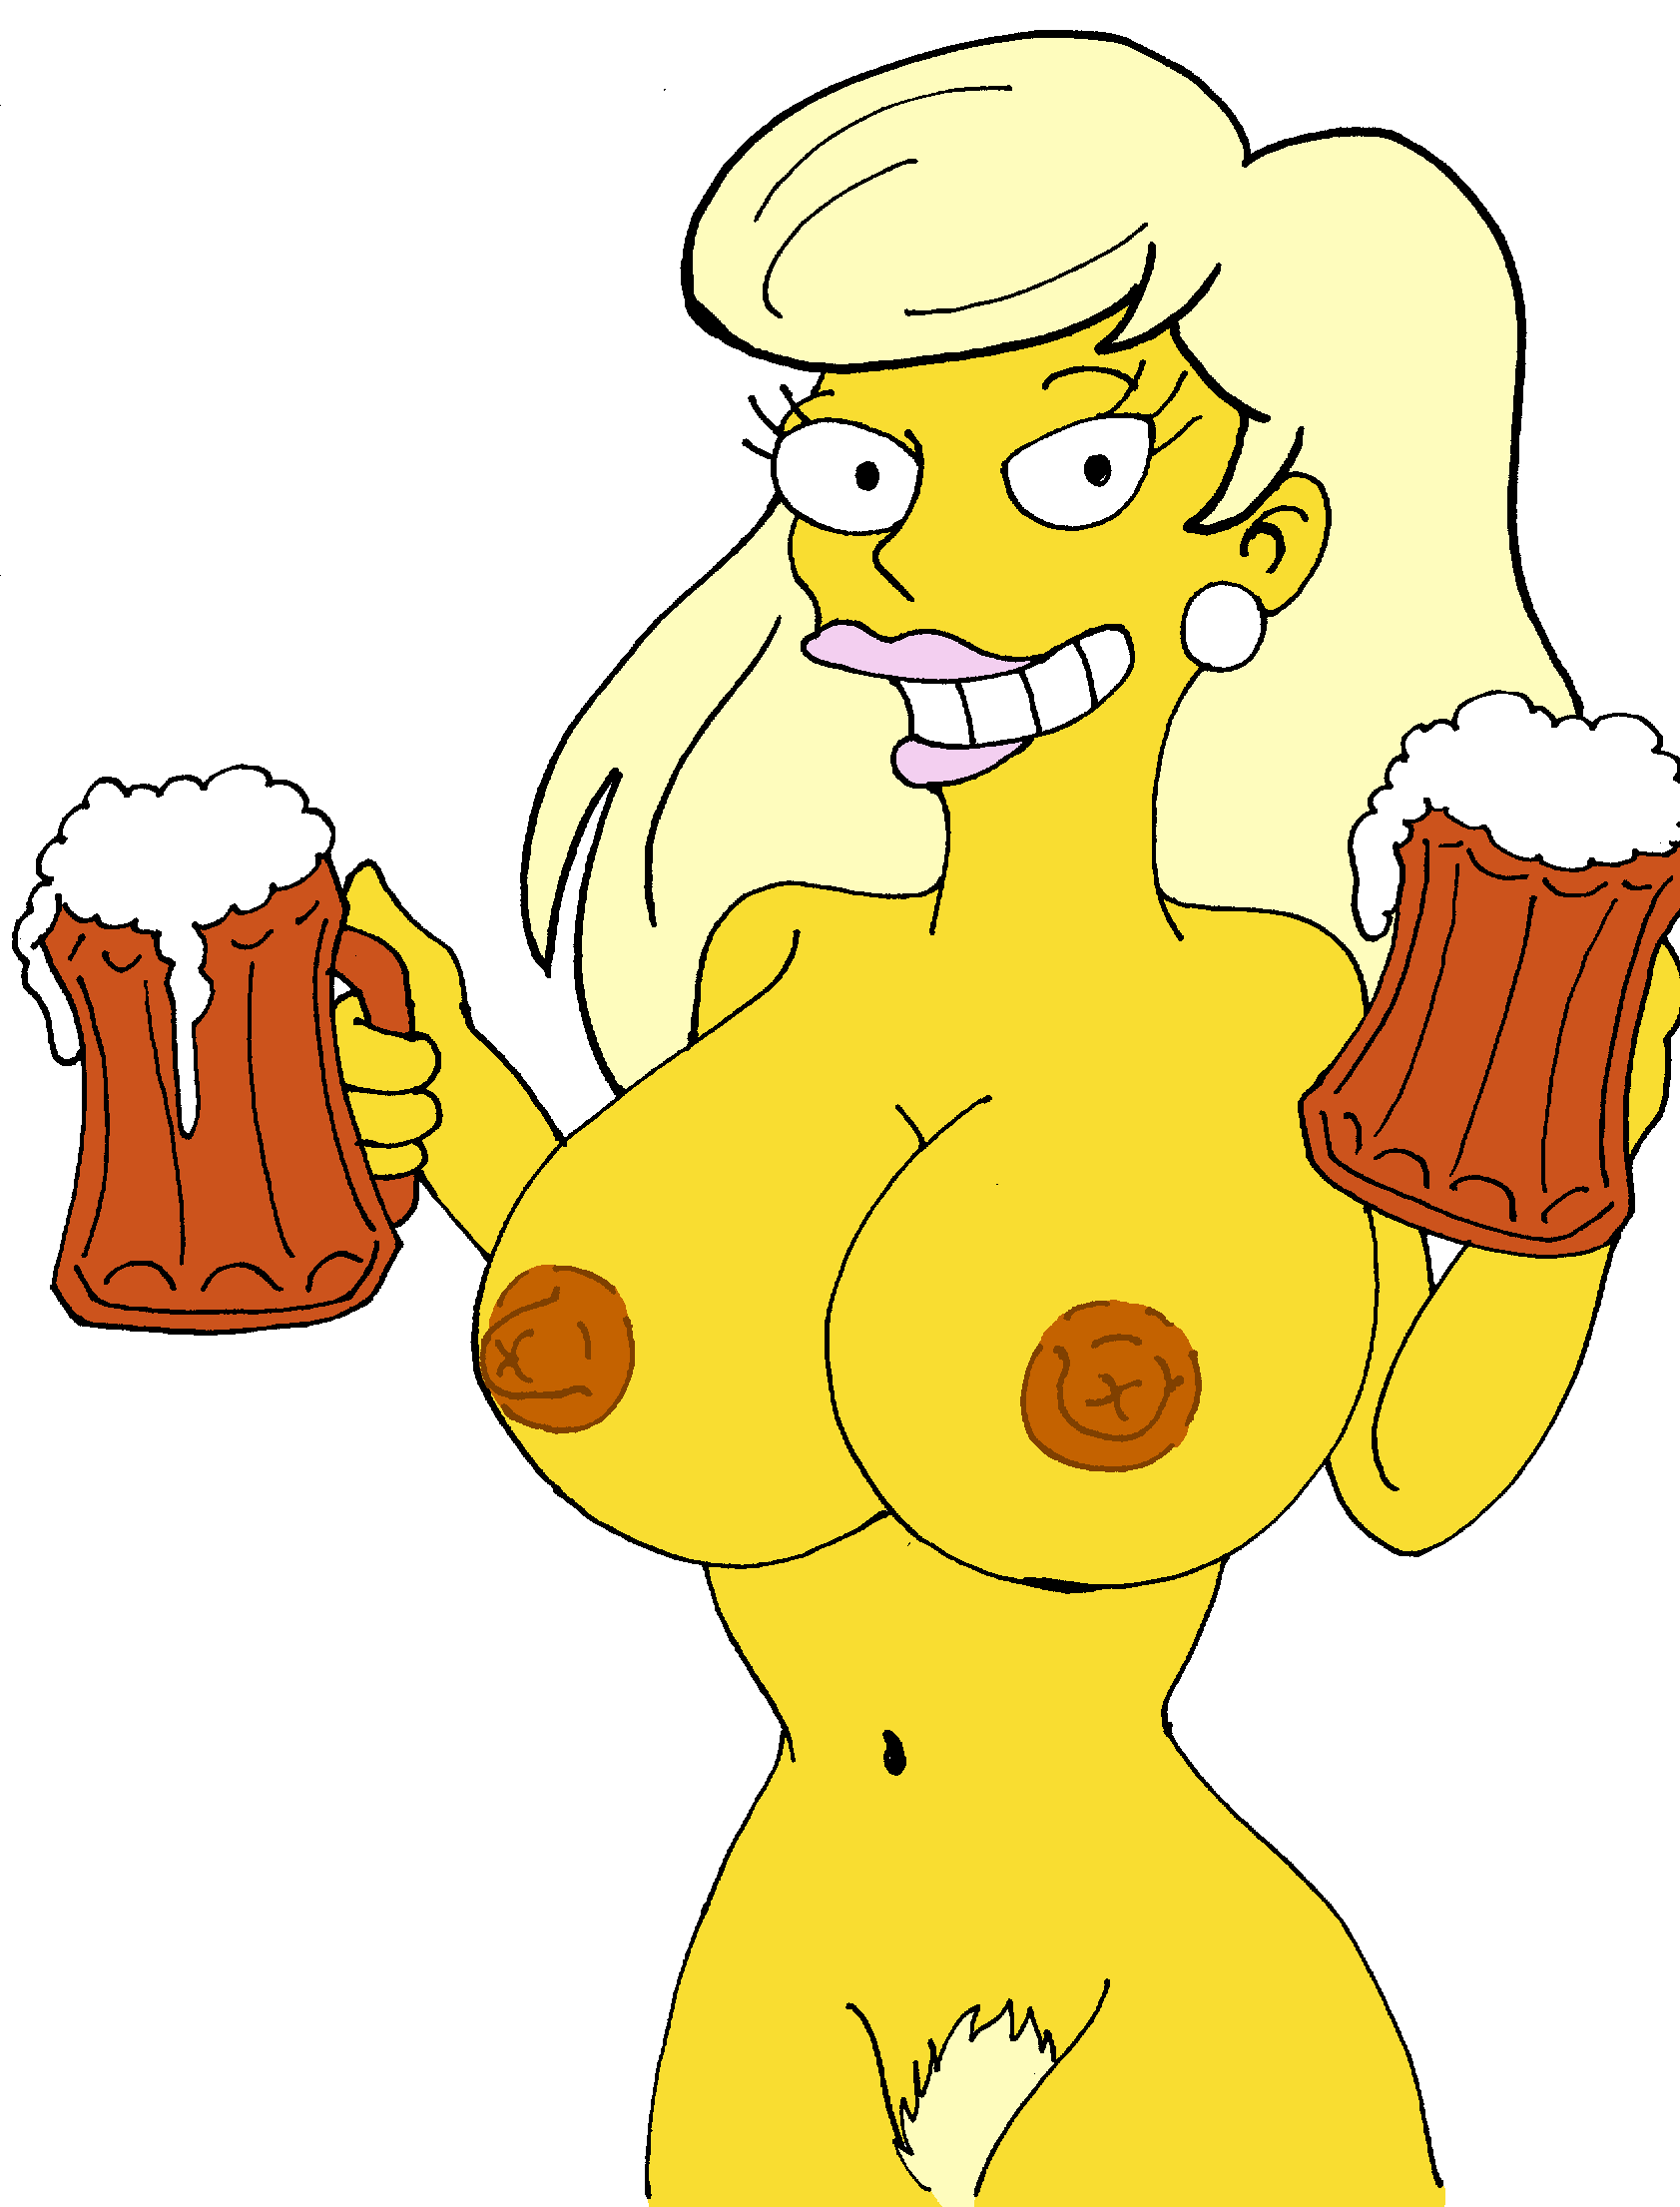 marge the simpsons naked from Quentin smith dead by daylight